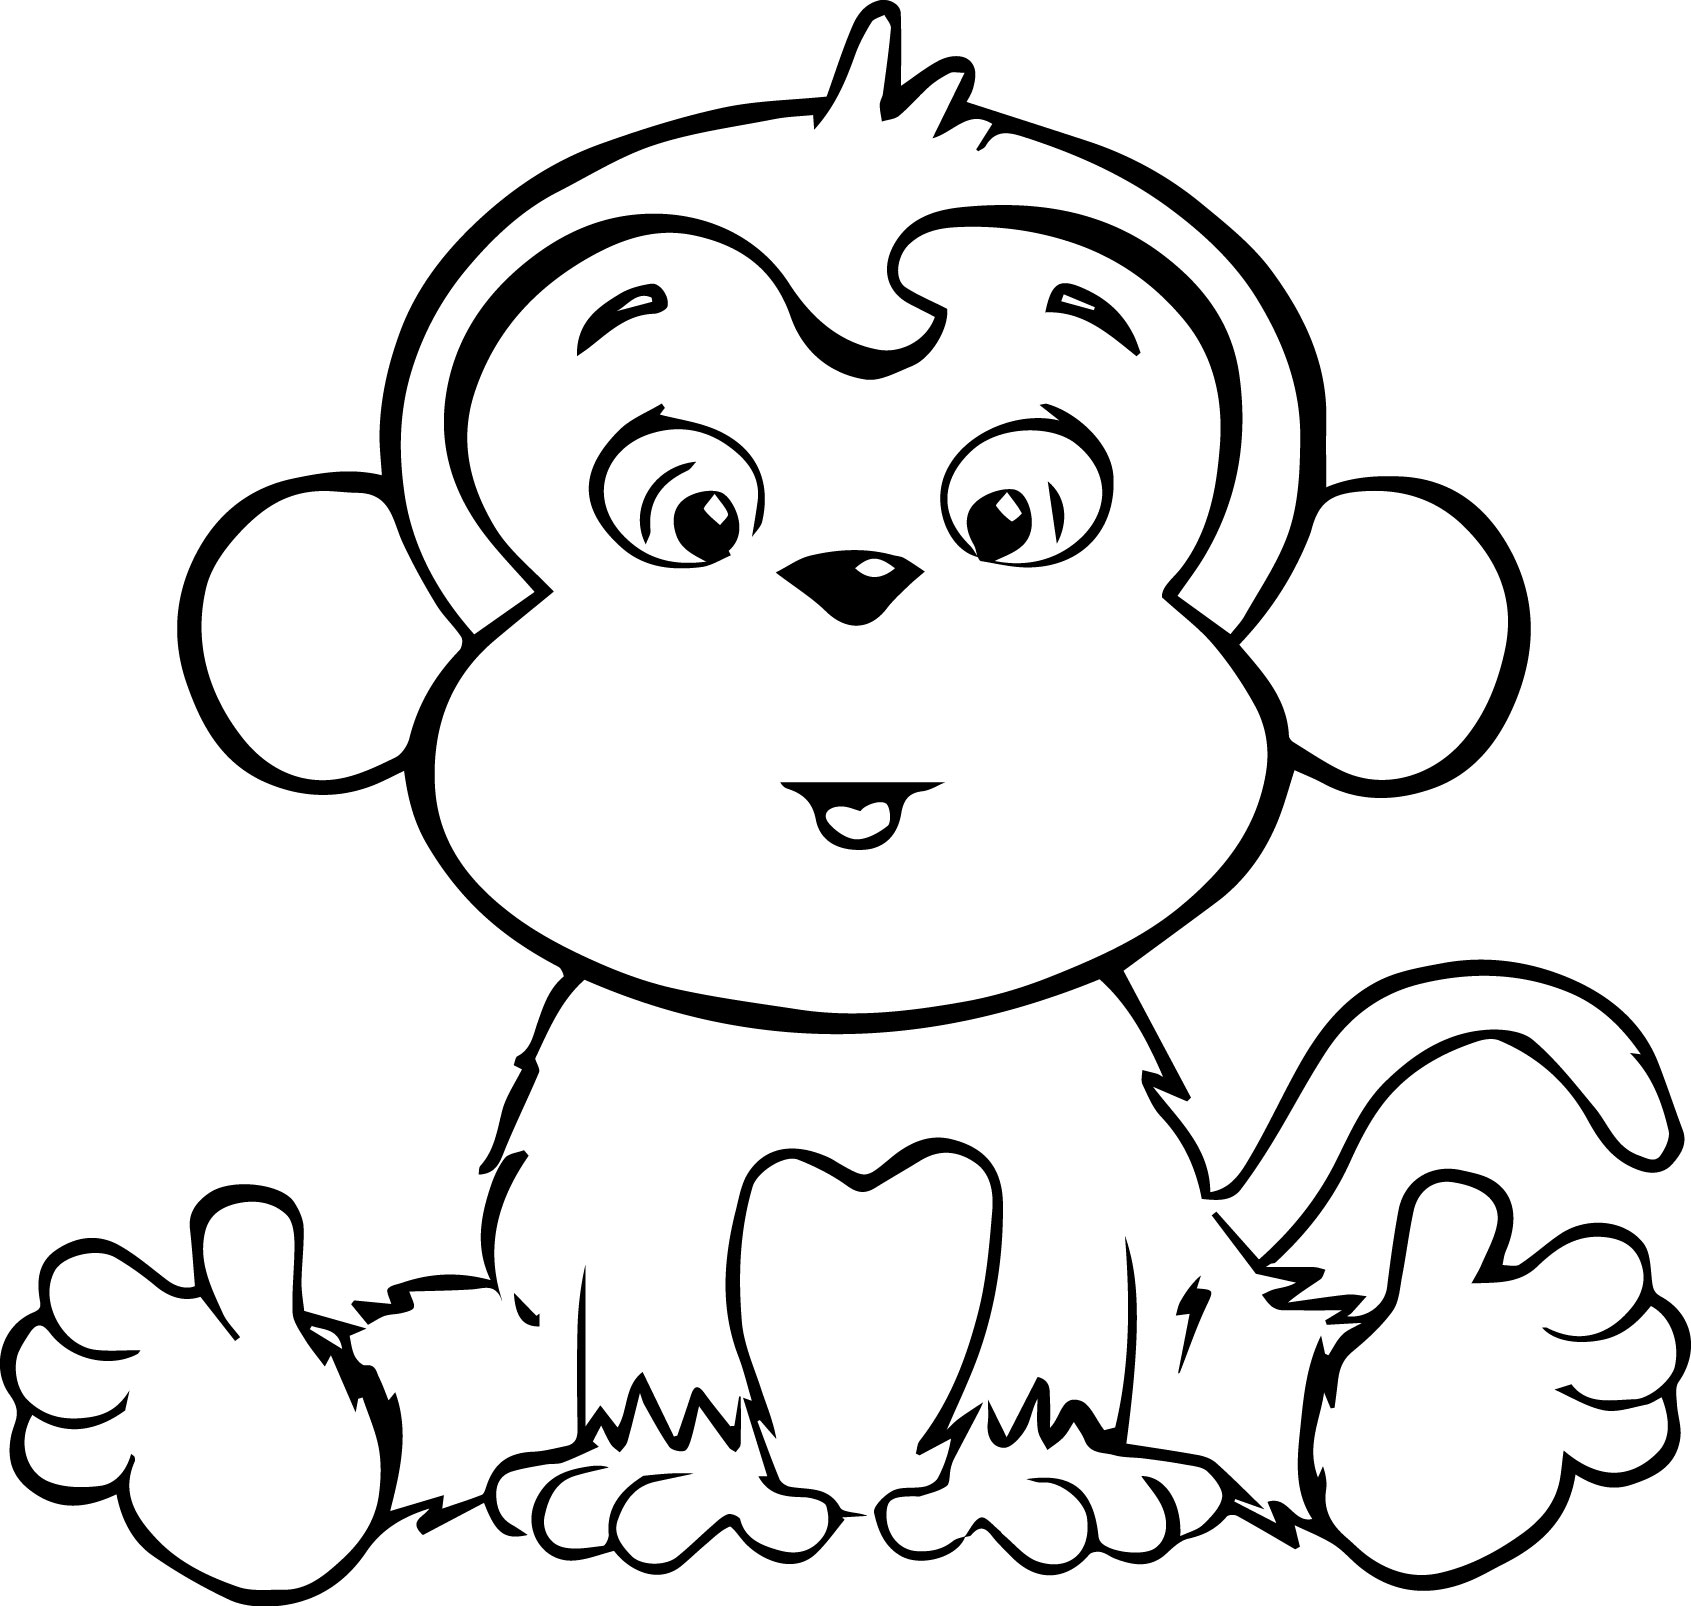 1691x1606 Awesome Cartoon Monkey Coloring Pages Gallery Printable Coloring